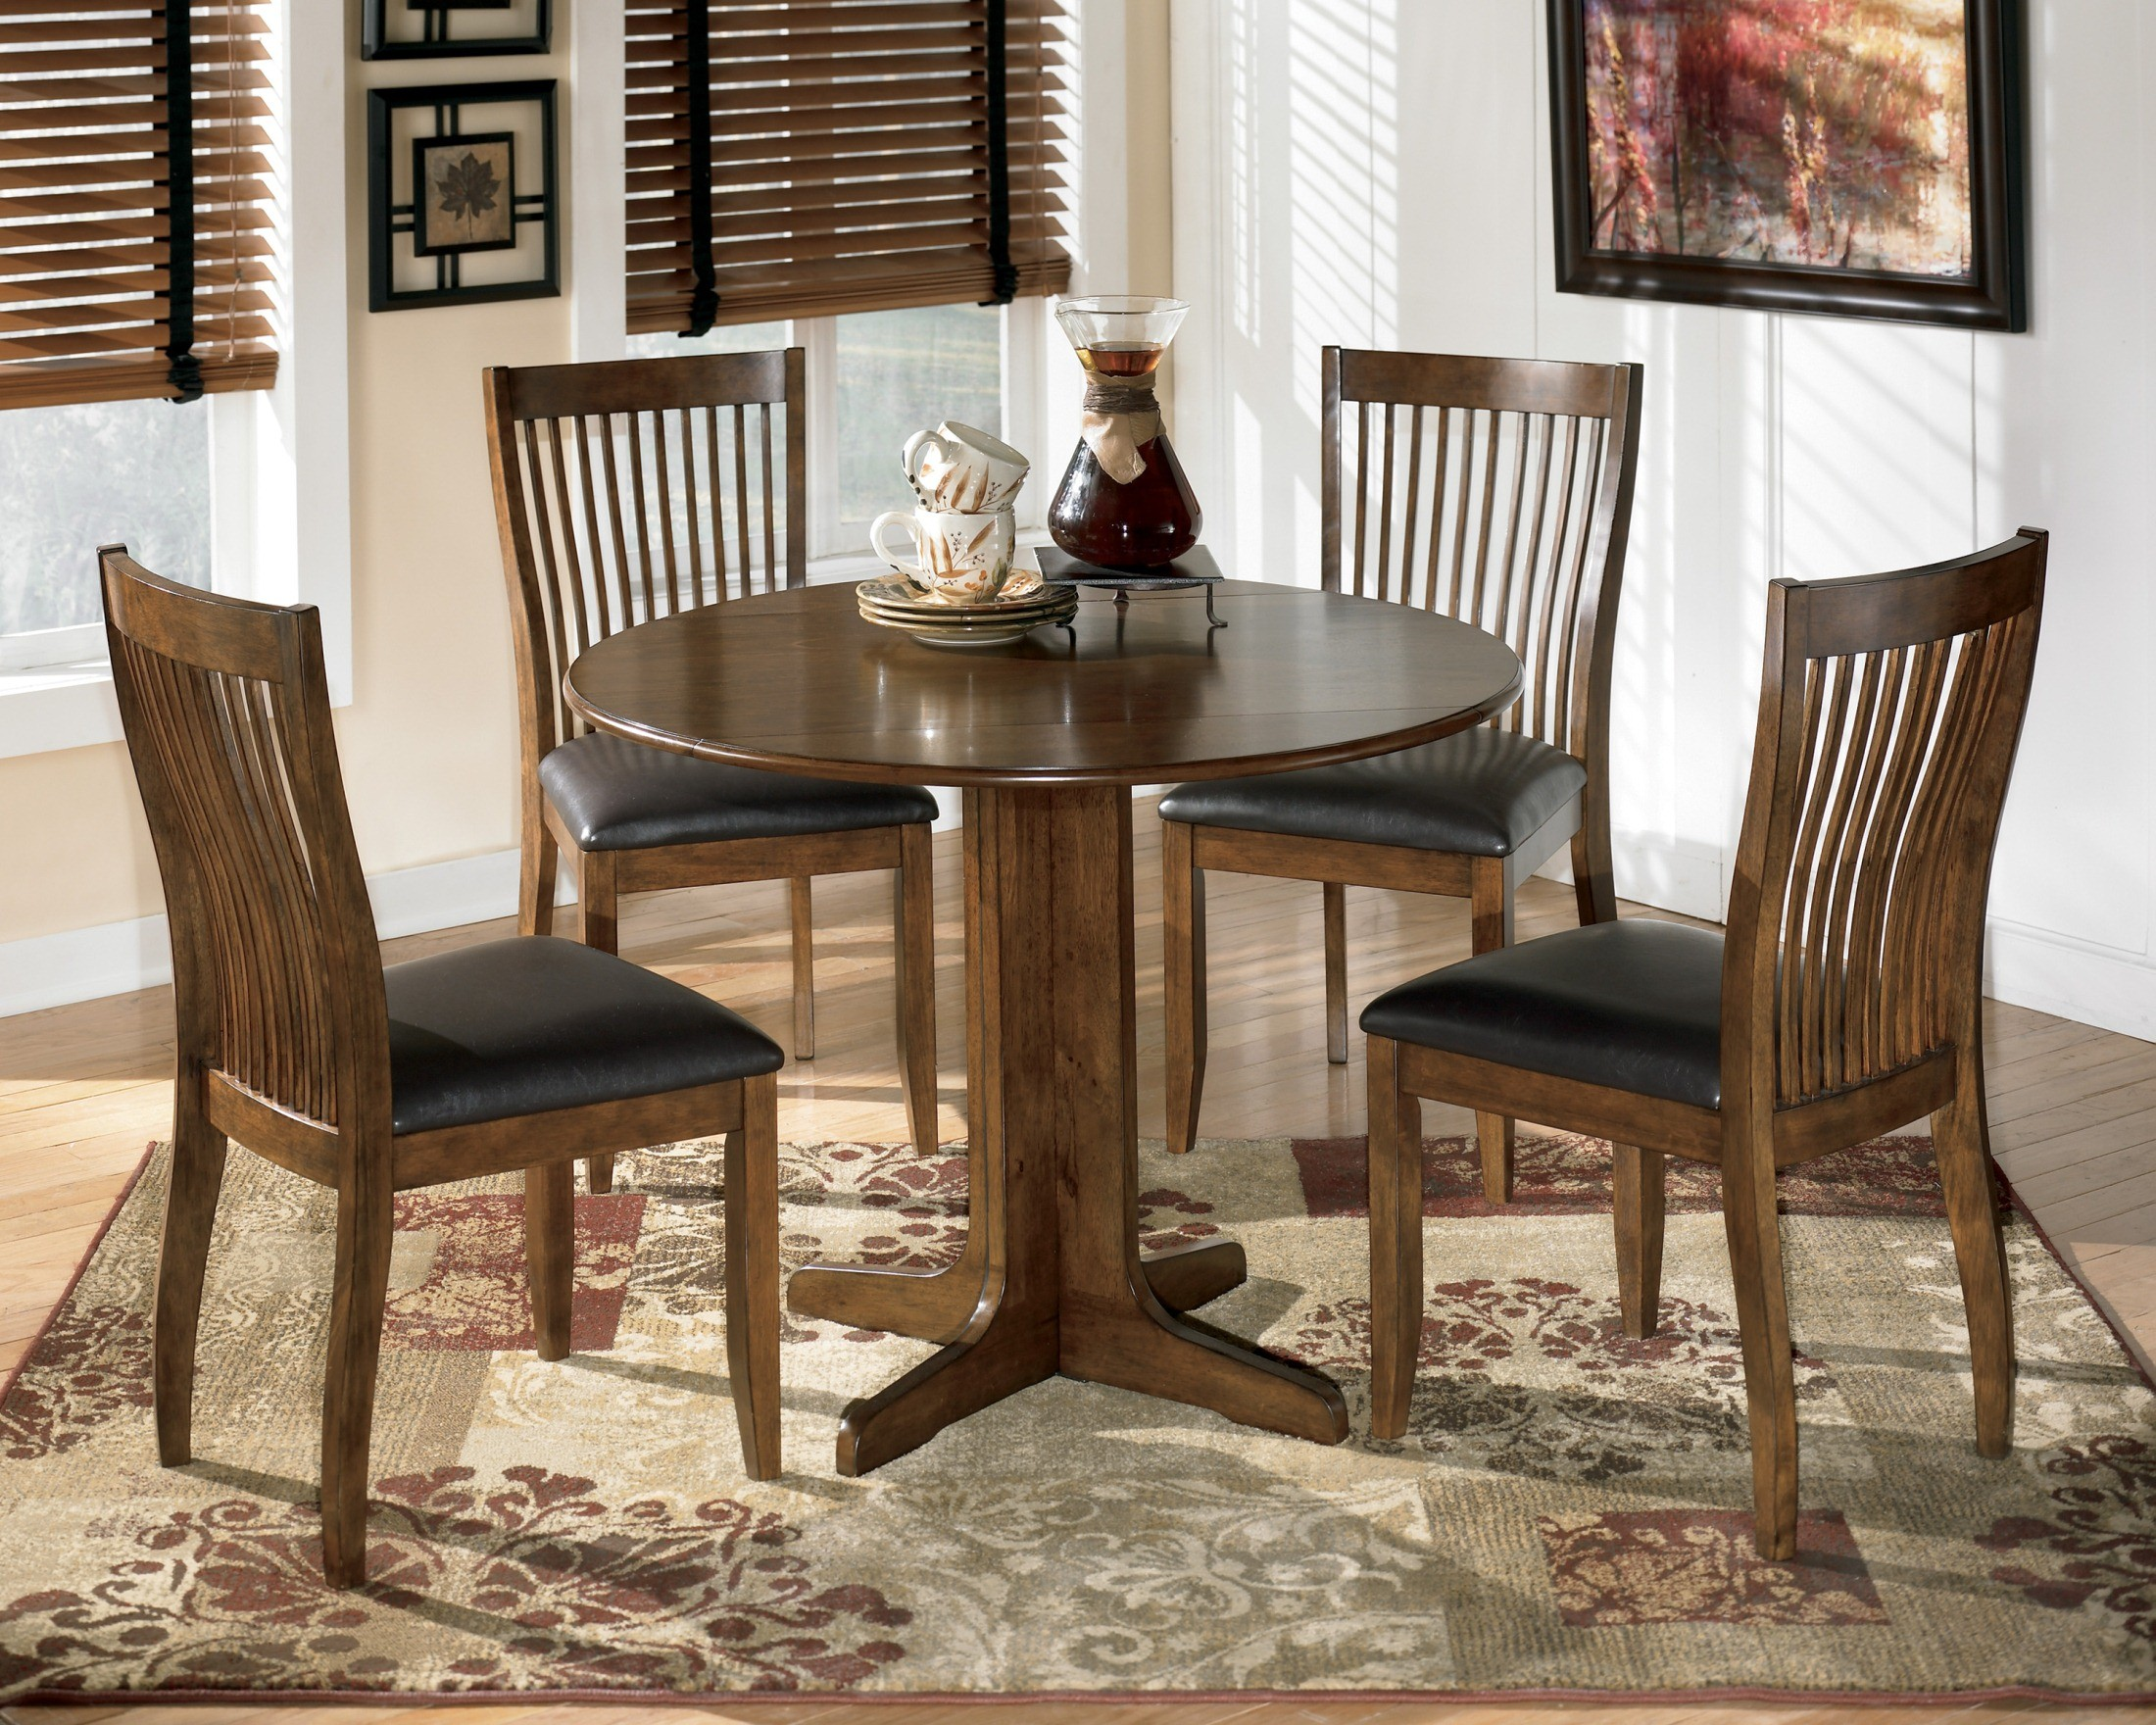 Stuman round drop leaf dining table set from ashley d293 for Round dining room sets with leaf